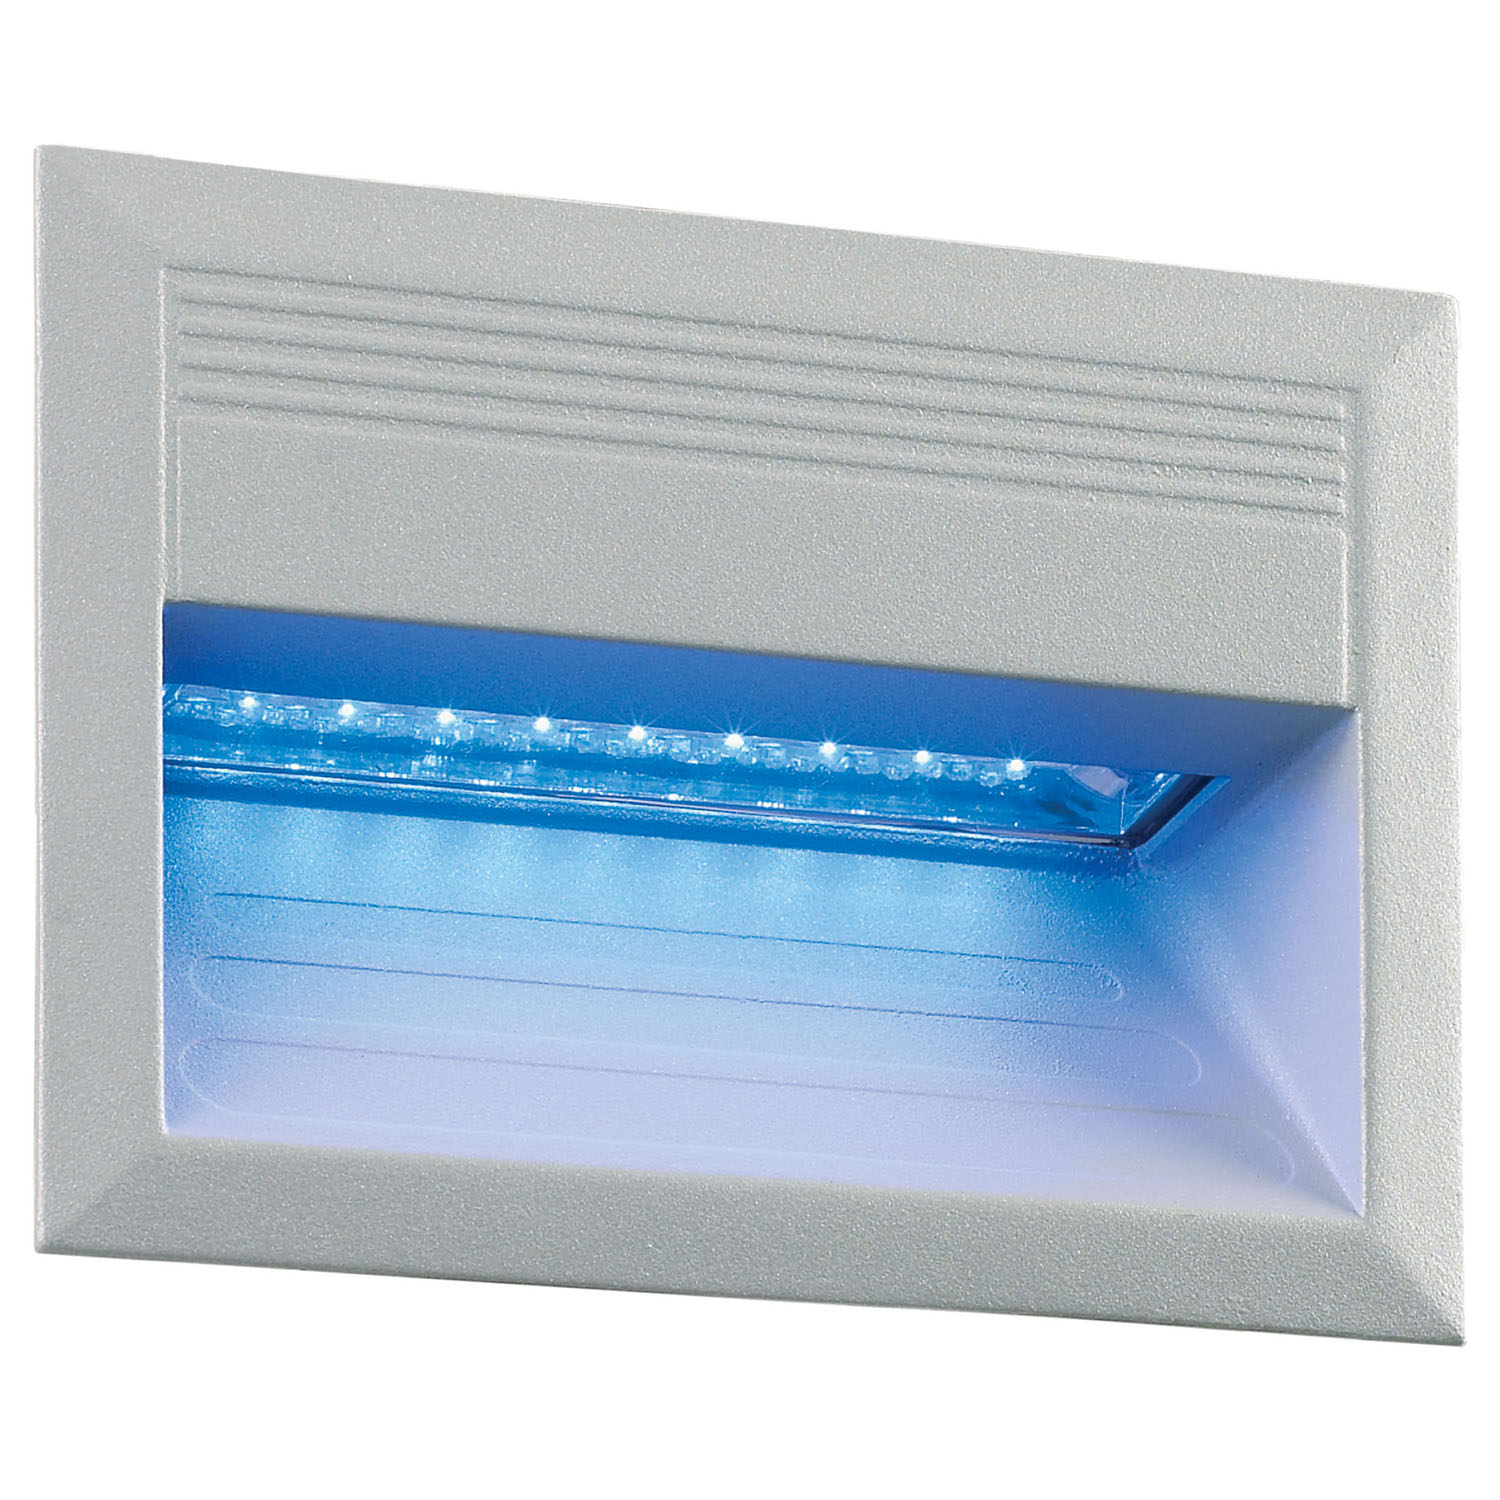 recessed outdoor wall lights photo - 4